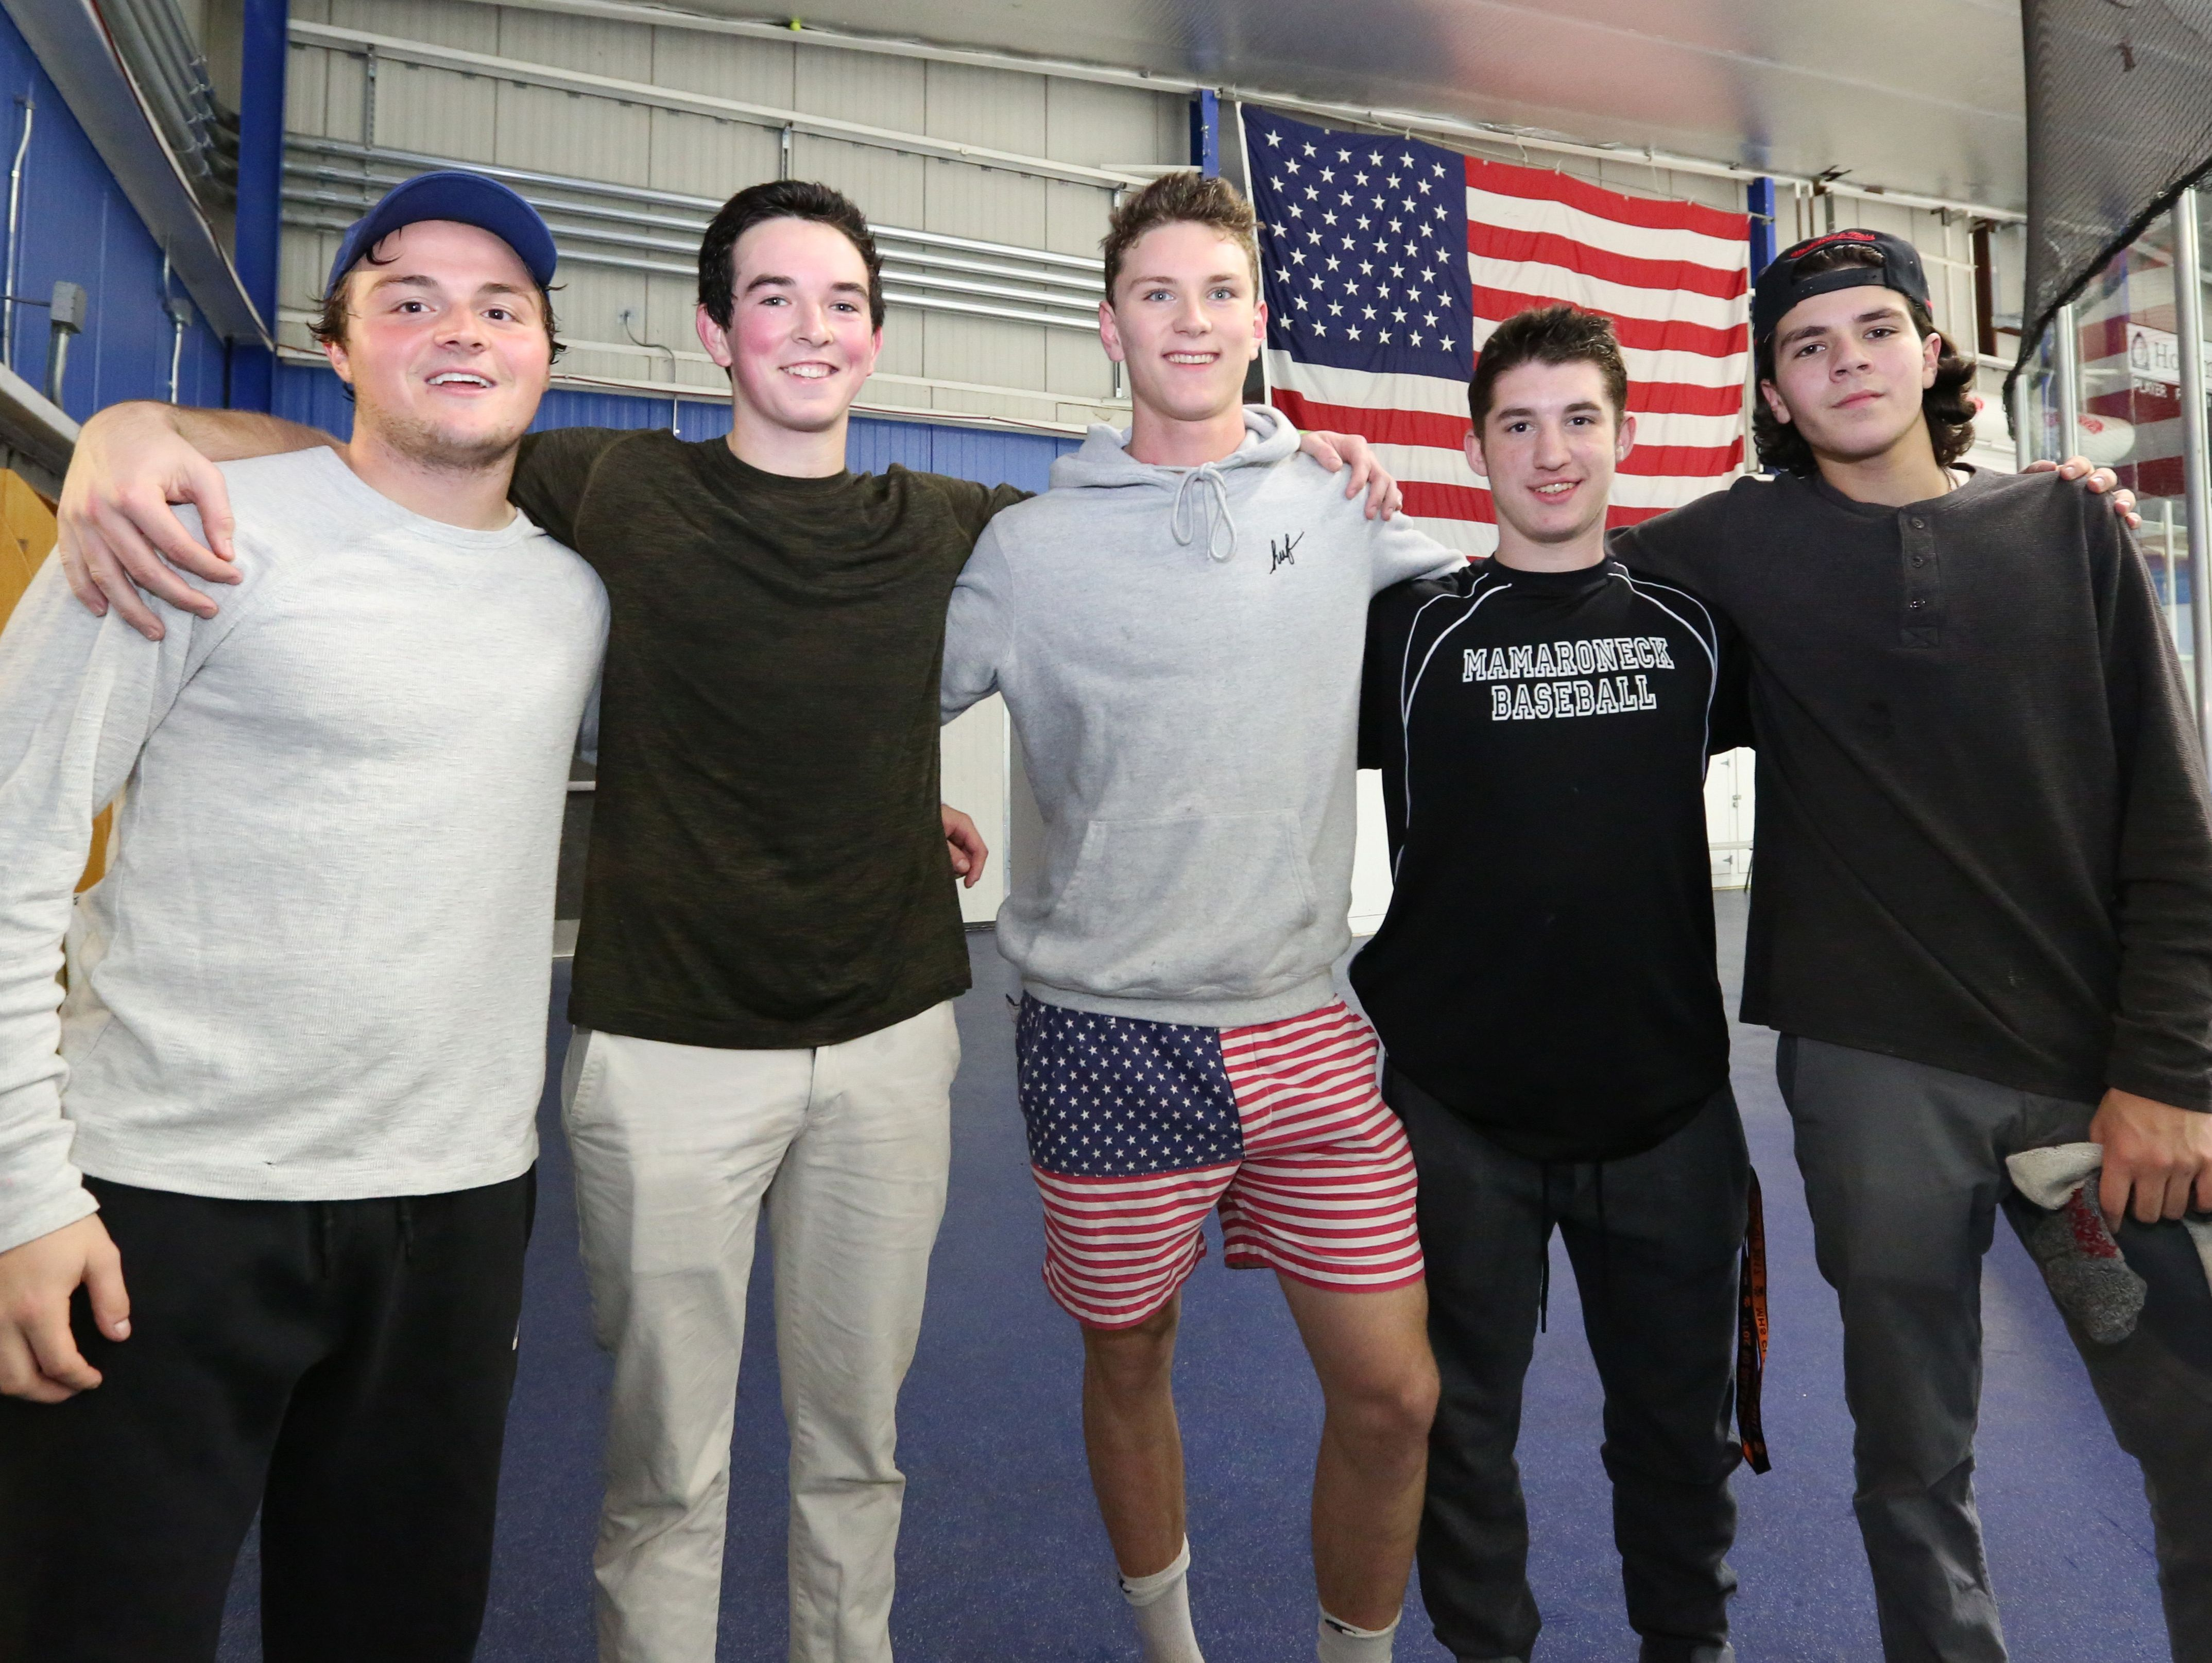 Mamaroneck hockey captains Matt DiCicco, left, Will Payne, James Torre, Tommy Spero and Michael Carducci after a practice at Hommocks ice rink Nov. 9, 2016.